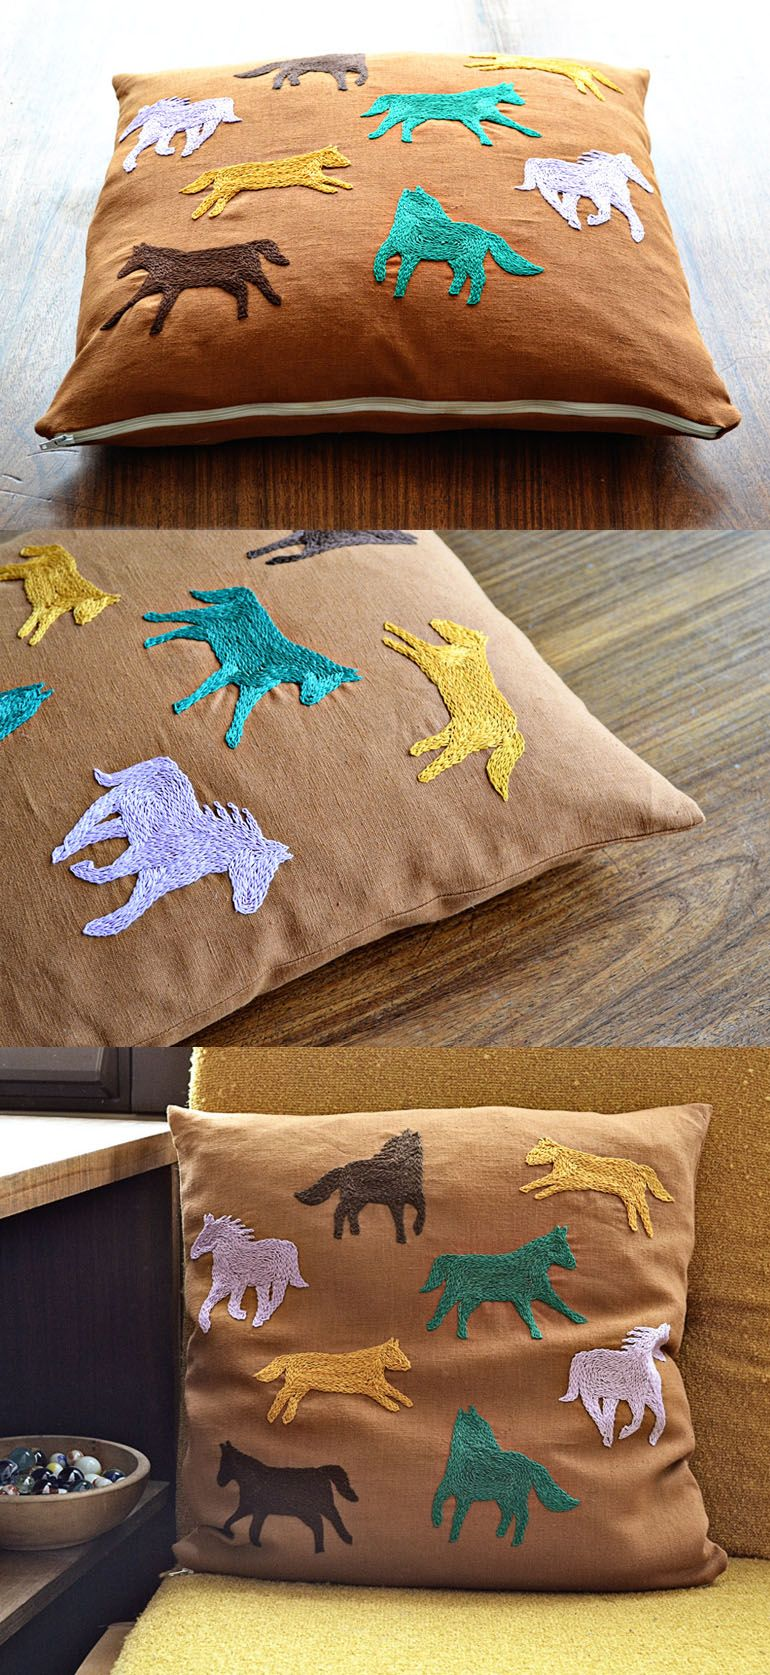 Horse embroidery pattern cushion cover beginner embroidery diy